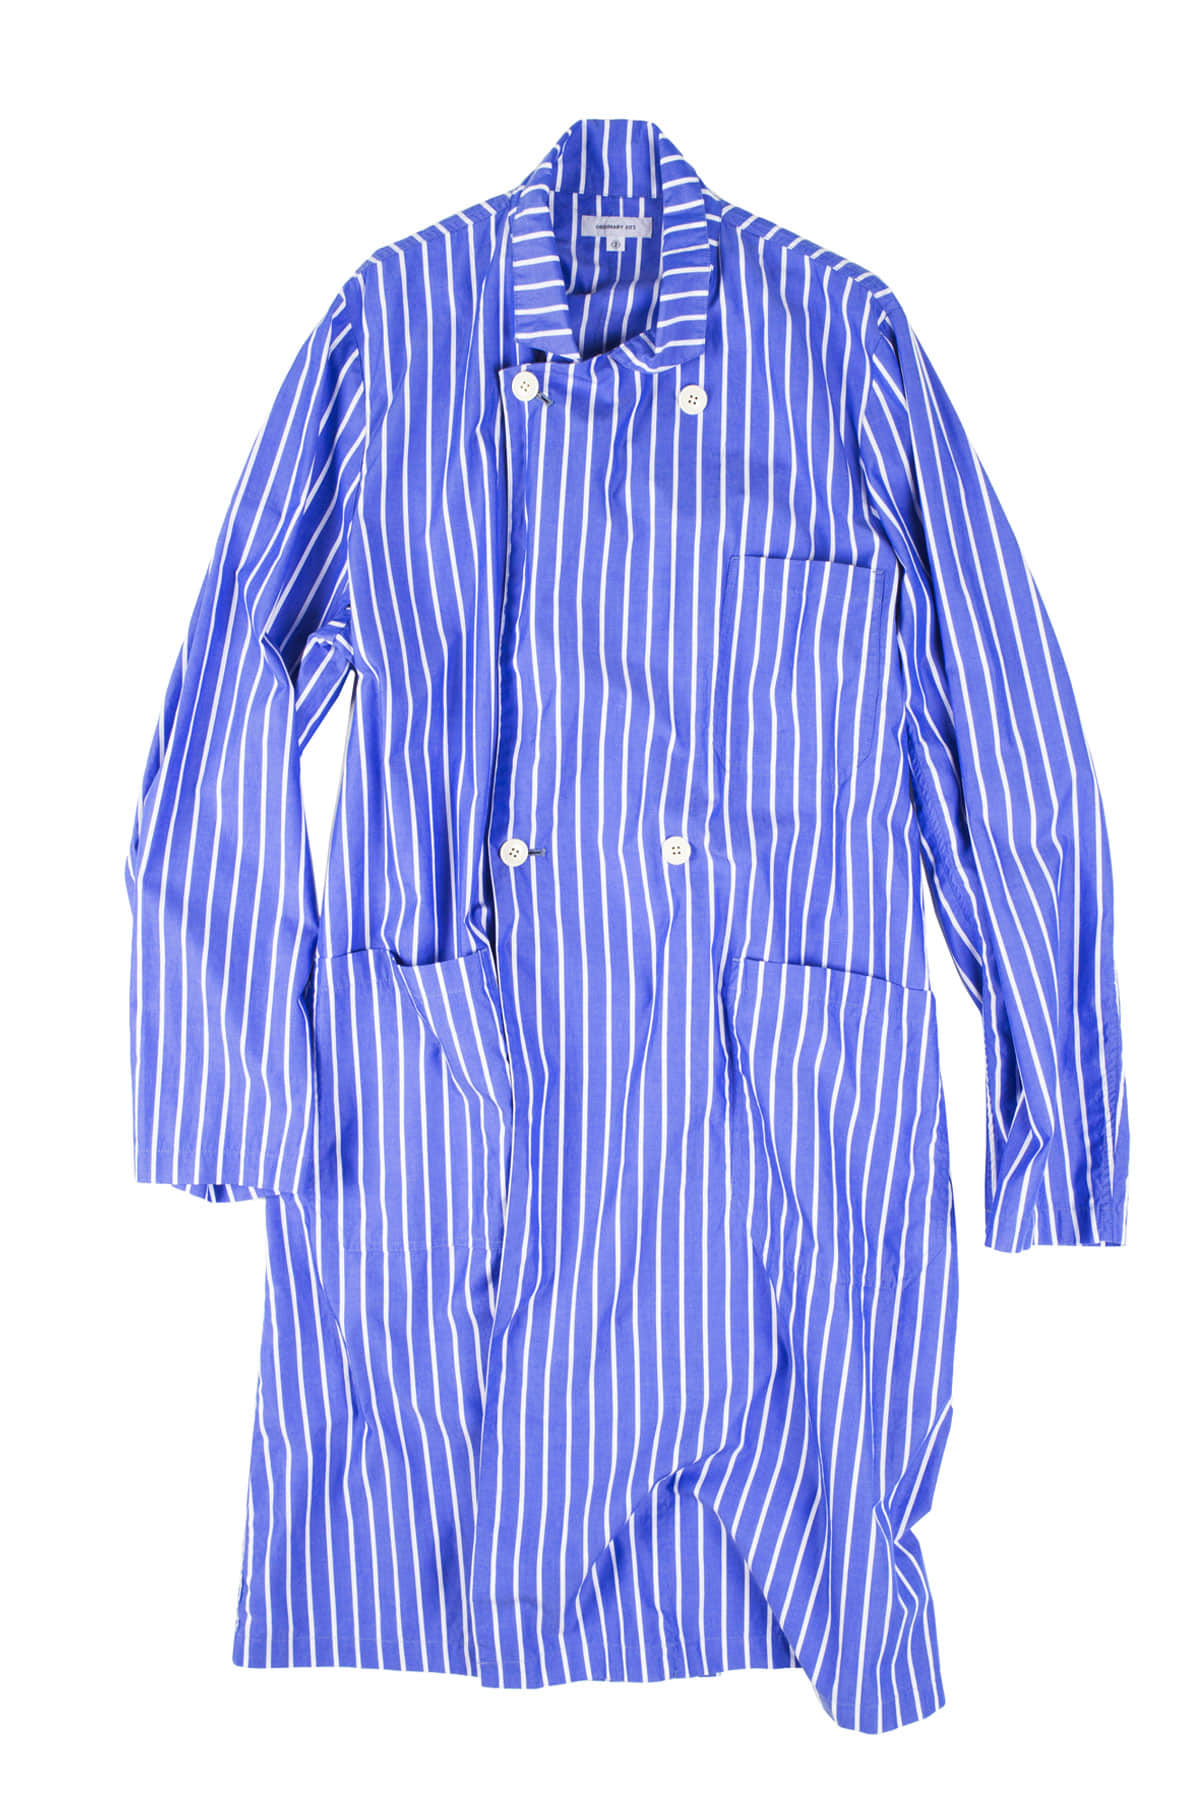 Ordinary fits : Store Coat Stripe (Blue White)